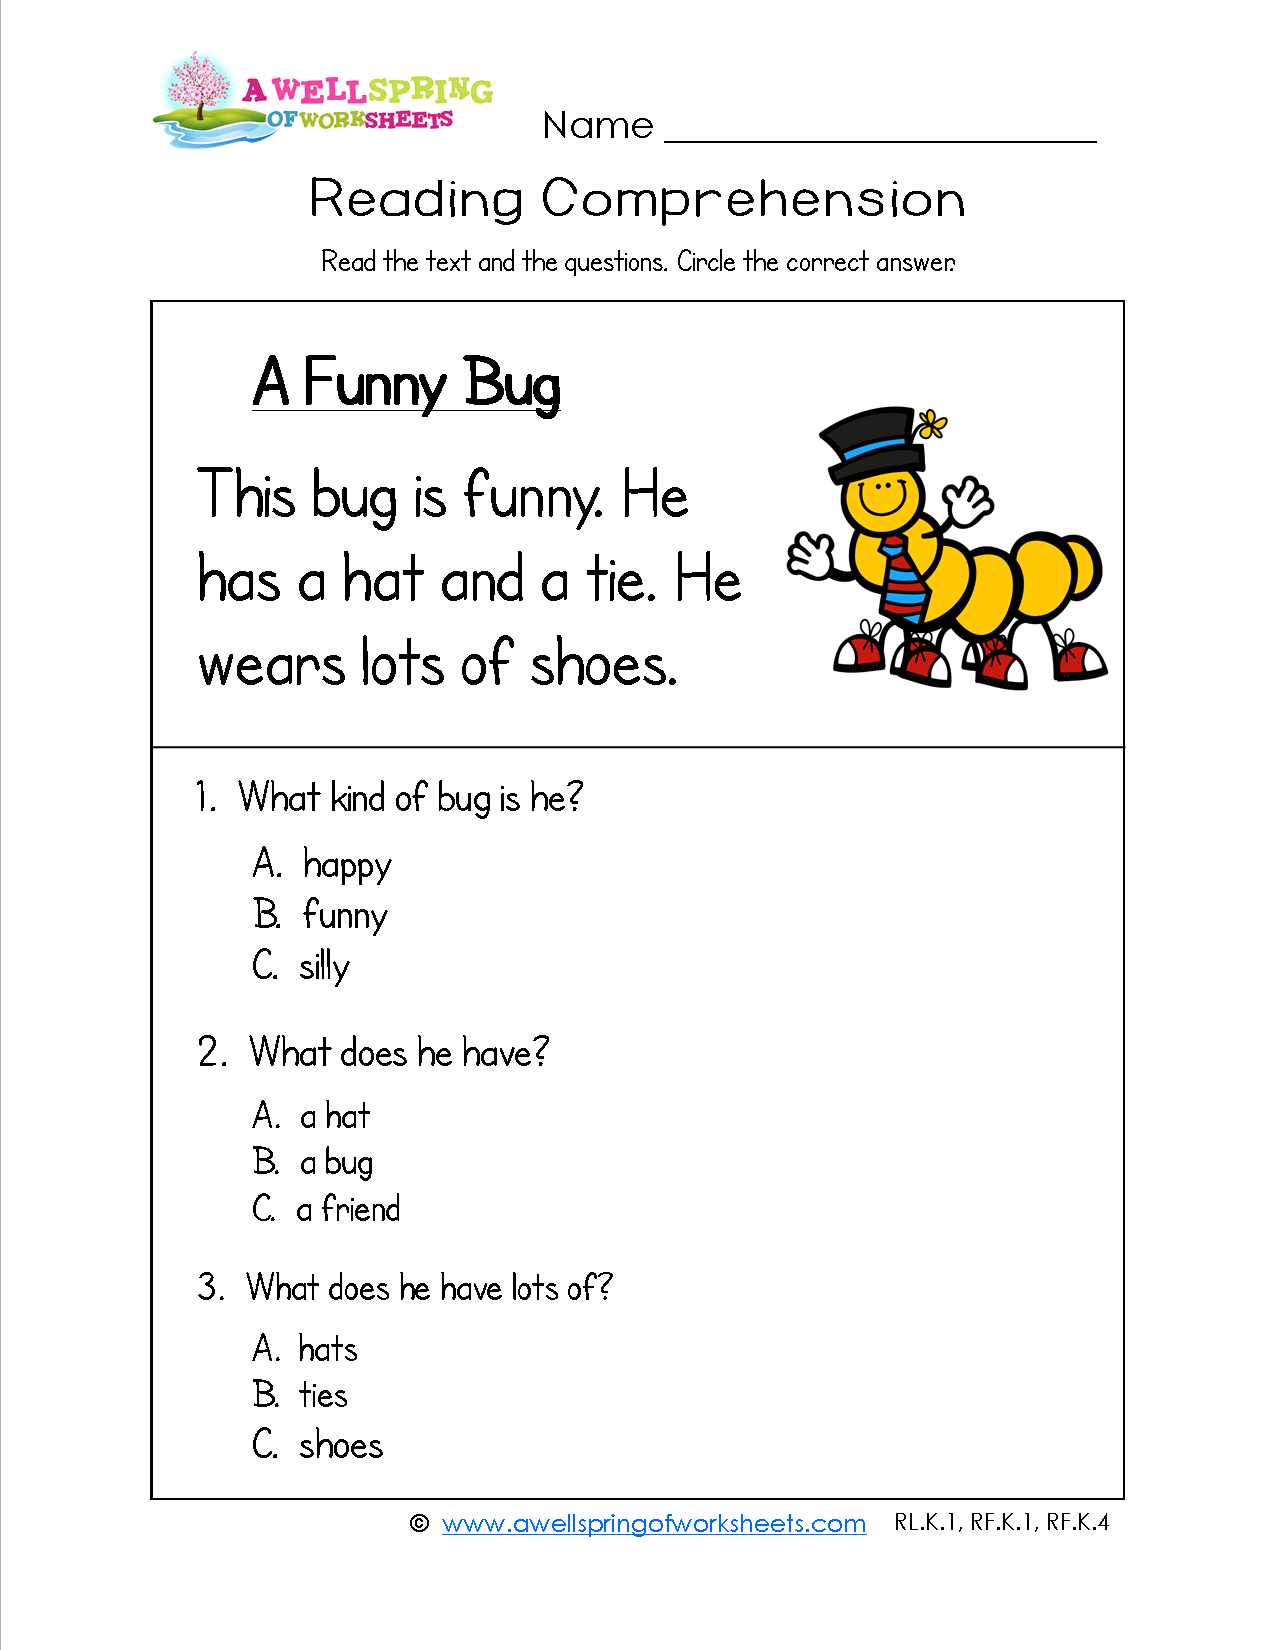 Worksheets Paragraph Comprehension Worksheets grade level worksheets on the job pinterest reading this worksheet is one of a collection many kindergarten comprehension come check them out